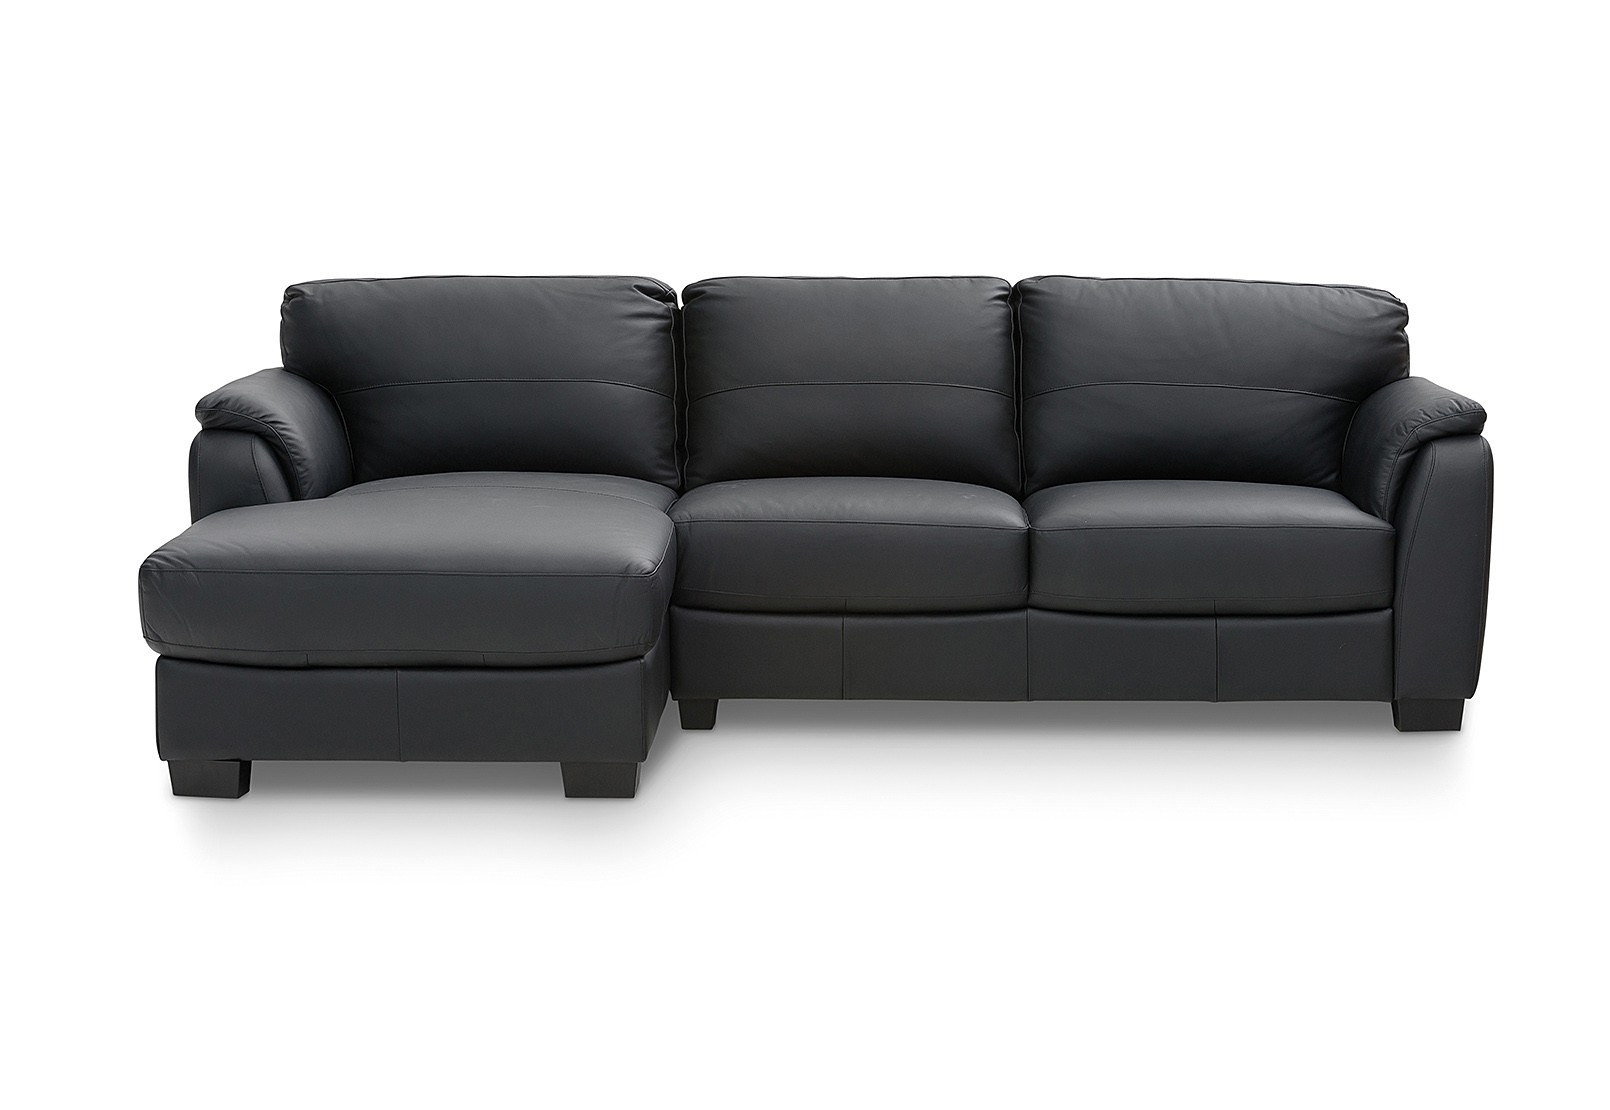 Grey Leather Sectional Sofa You Love American Made Sofas Serta Bed 2 In Marissa Ii 3 Piece Sectionals (Image 5 of 25)